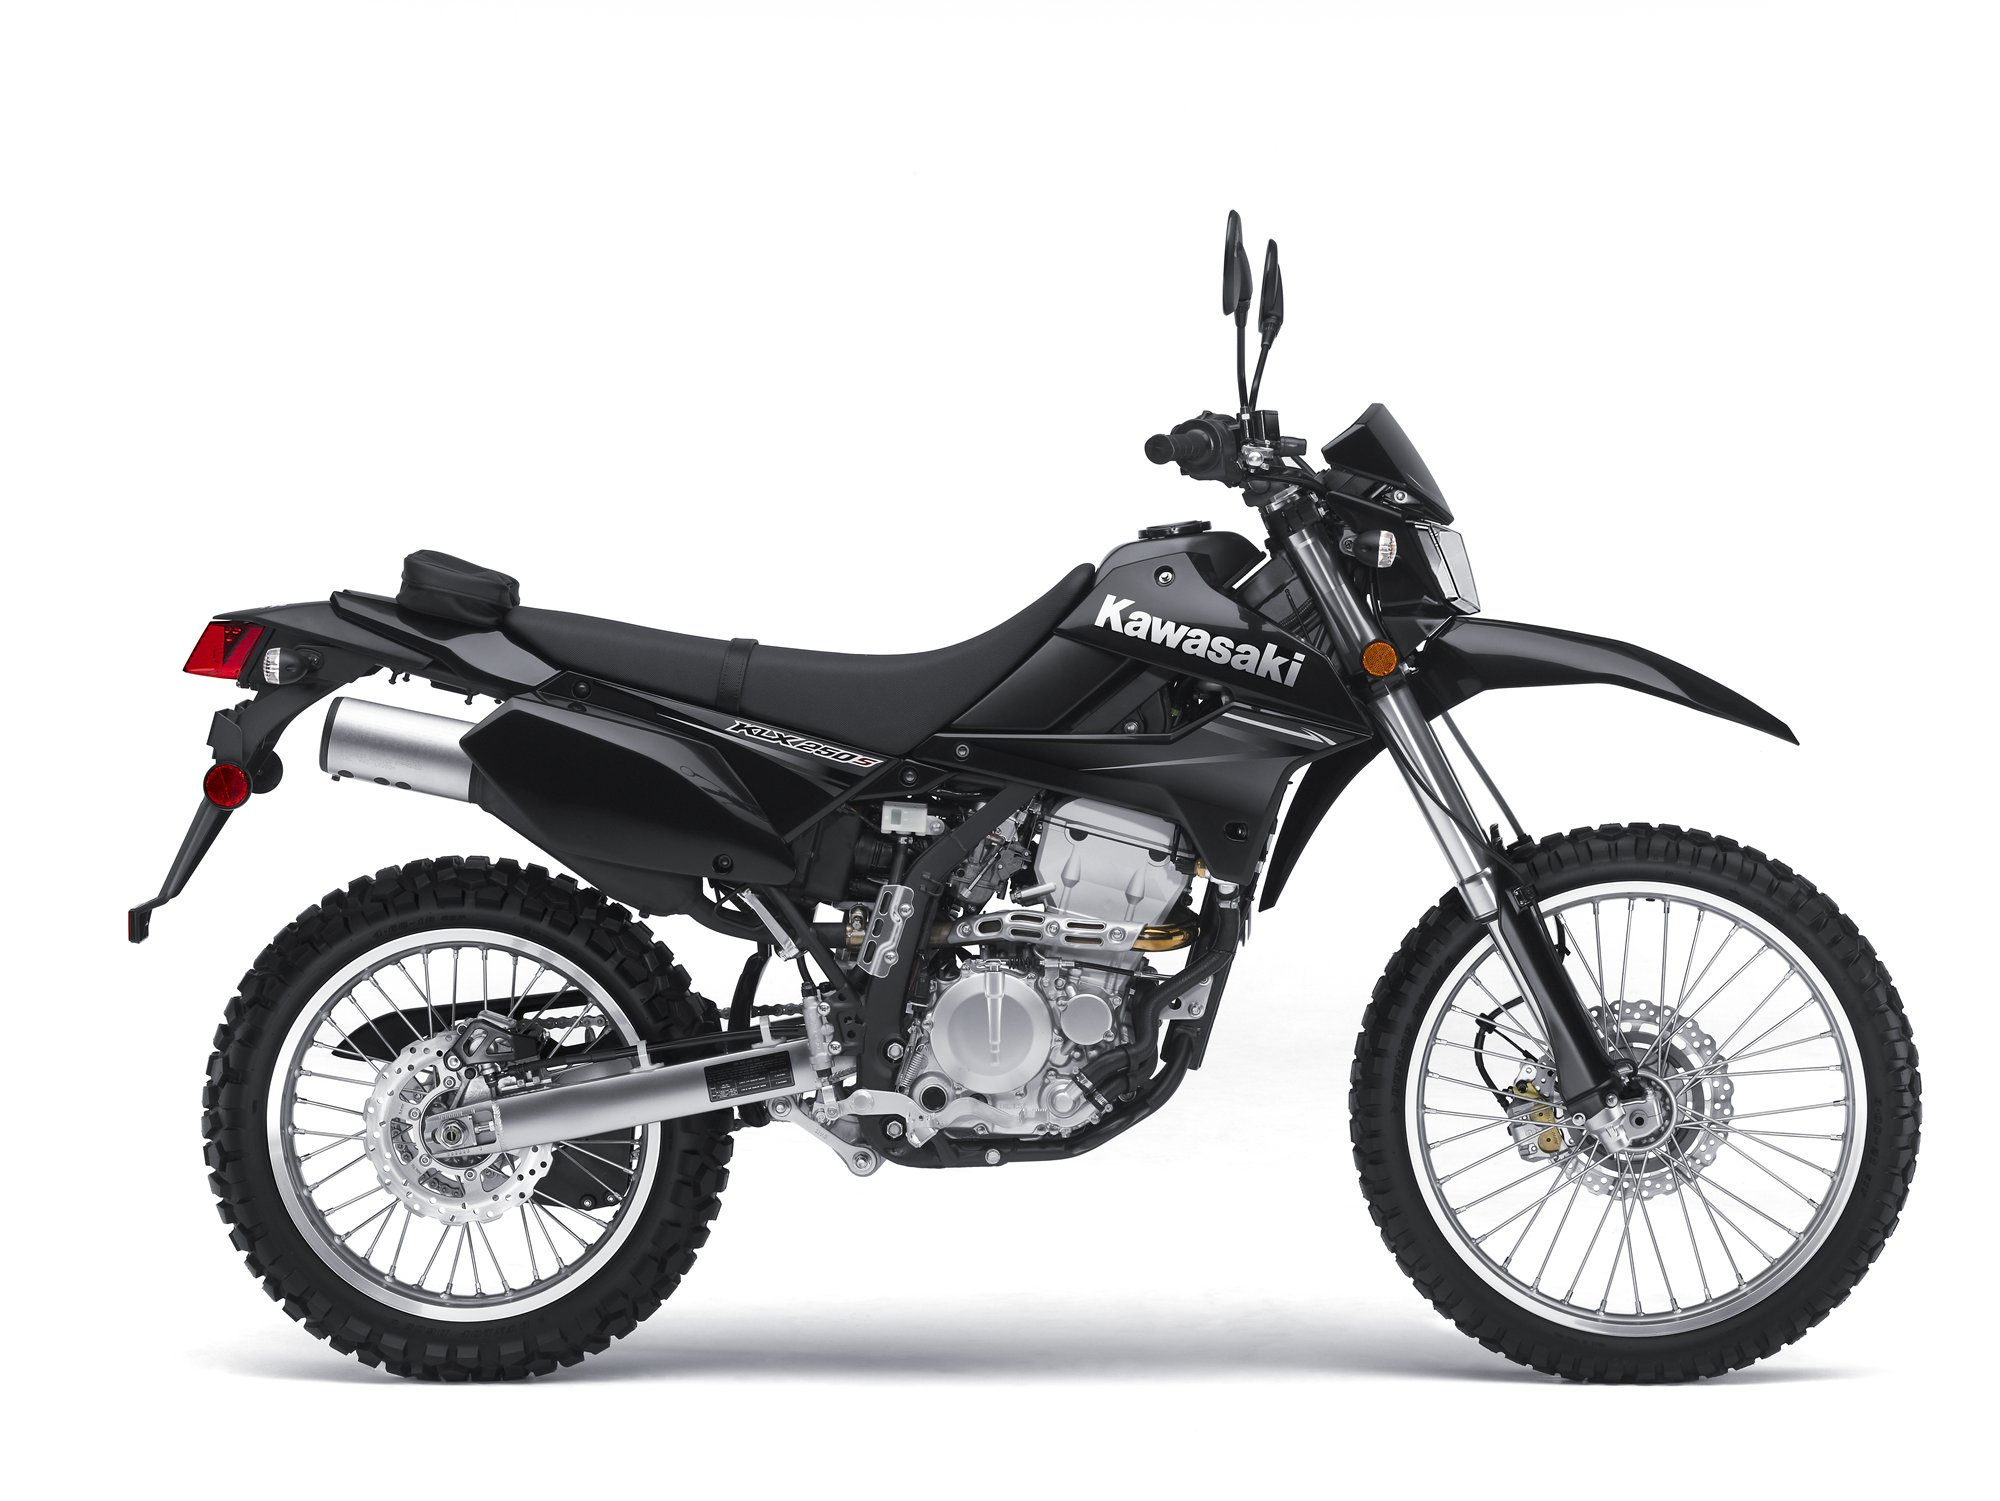 2010 kawasaki klx250s review top speed. Black Bedroom Furniture Sets. Home Design Ideas